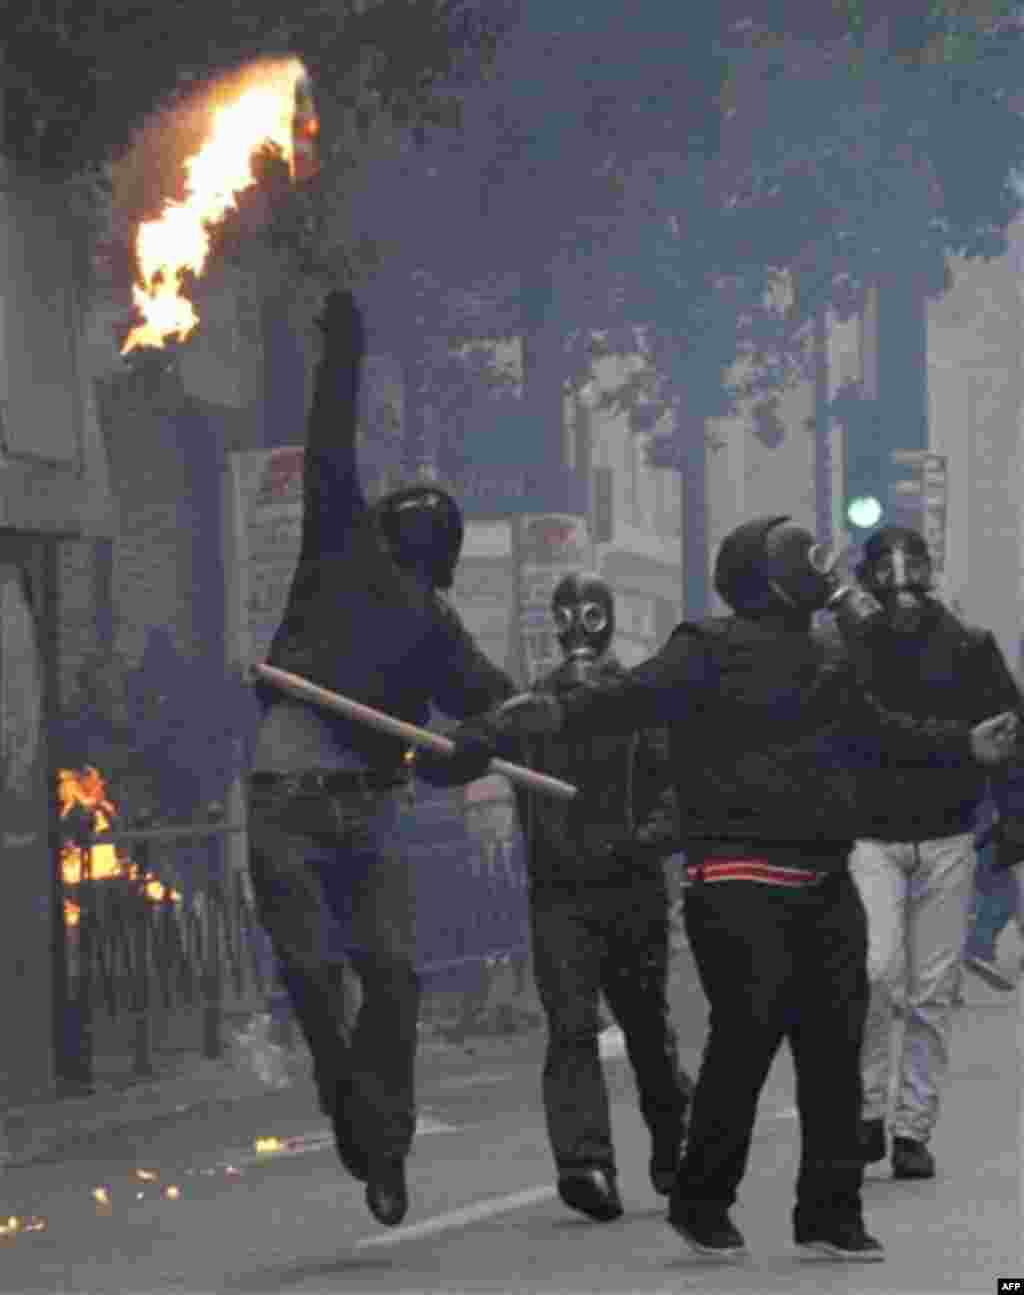 A protester throws a petrol bomb at riot police during clashes in Athens, Wednesday, Dec. 15, 2010. Hundreds of protesters clashed with riot police across central Athens Wednesday, smashing cars and hurling gasoline bombs during a massive labor protest ag